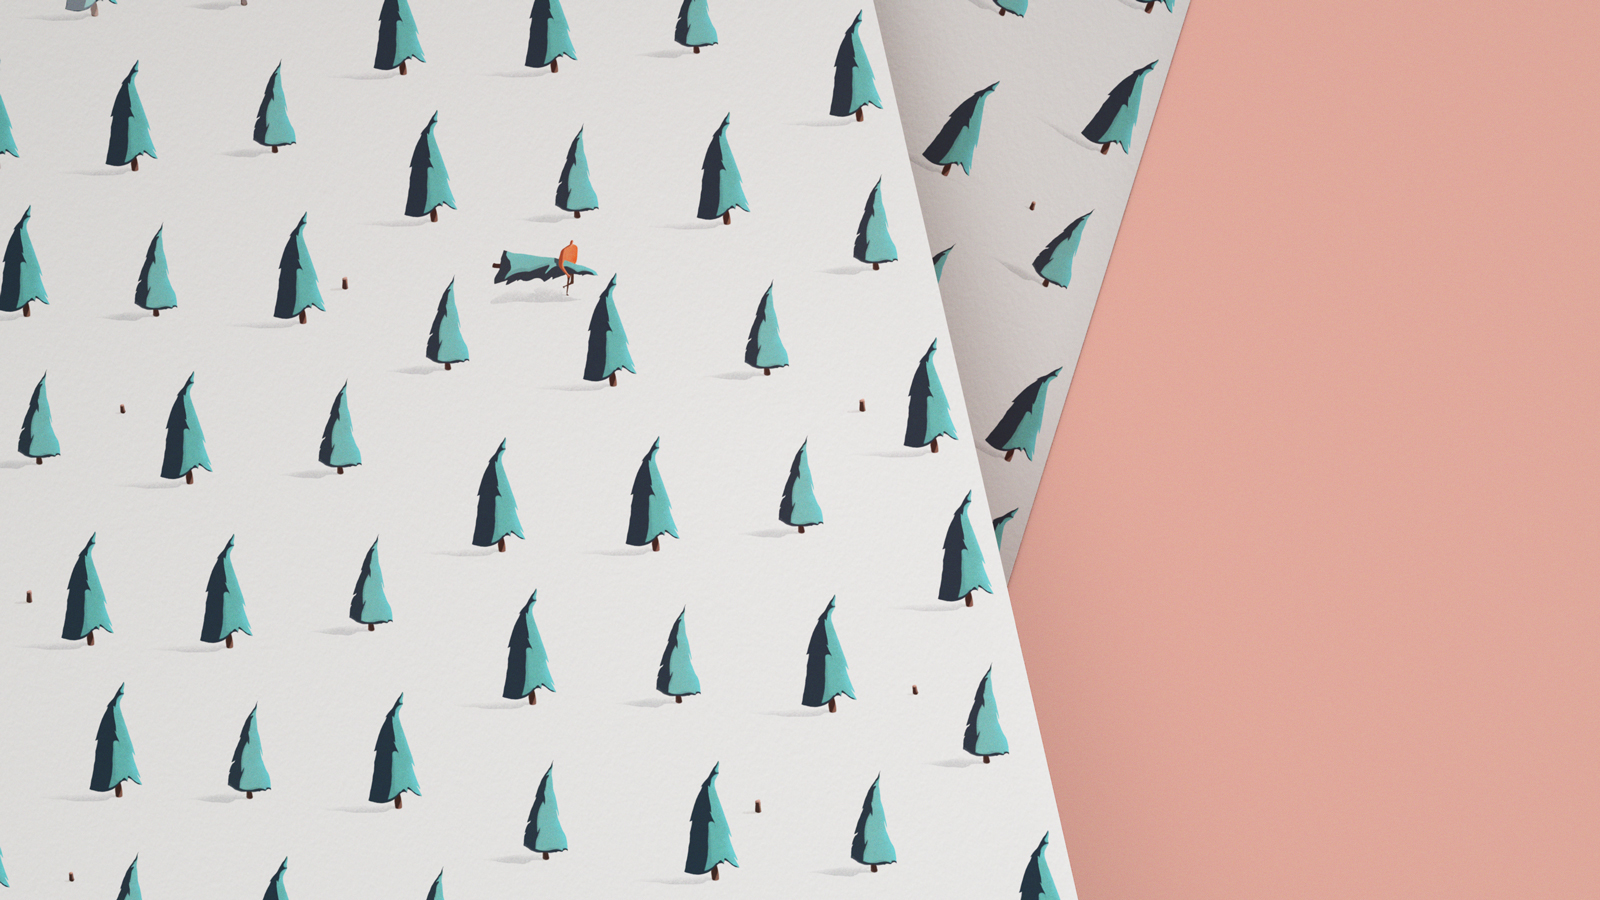 Graphic Design: Wrapping Papers